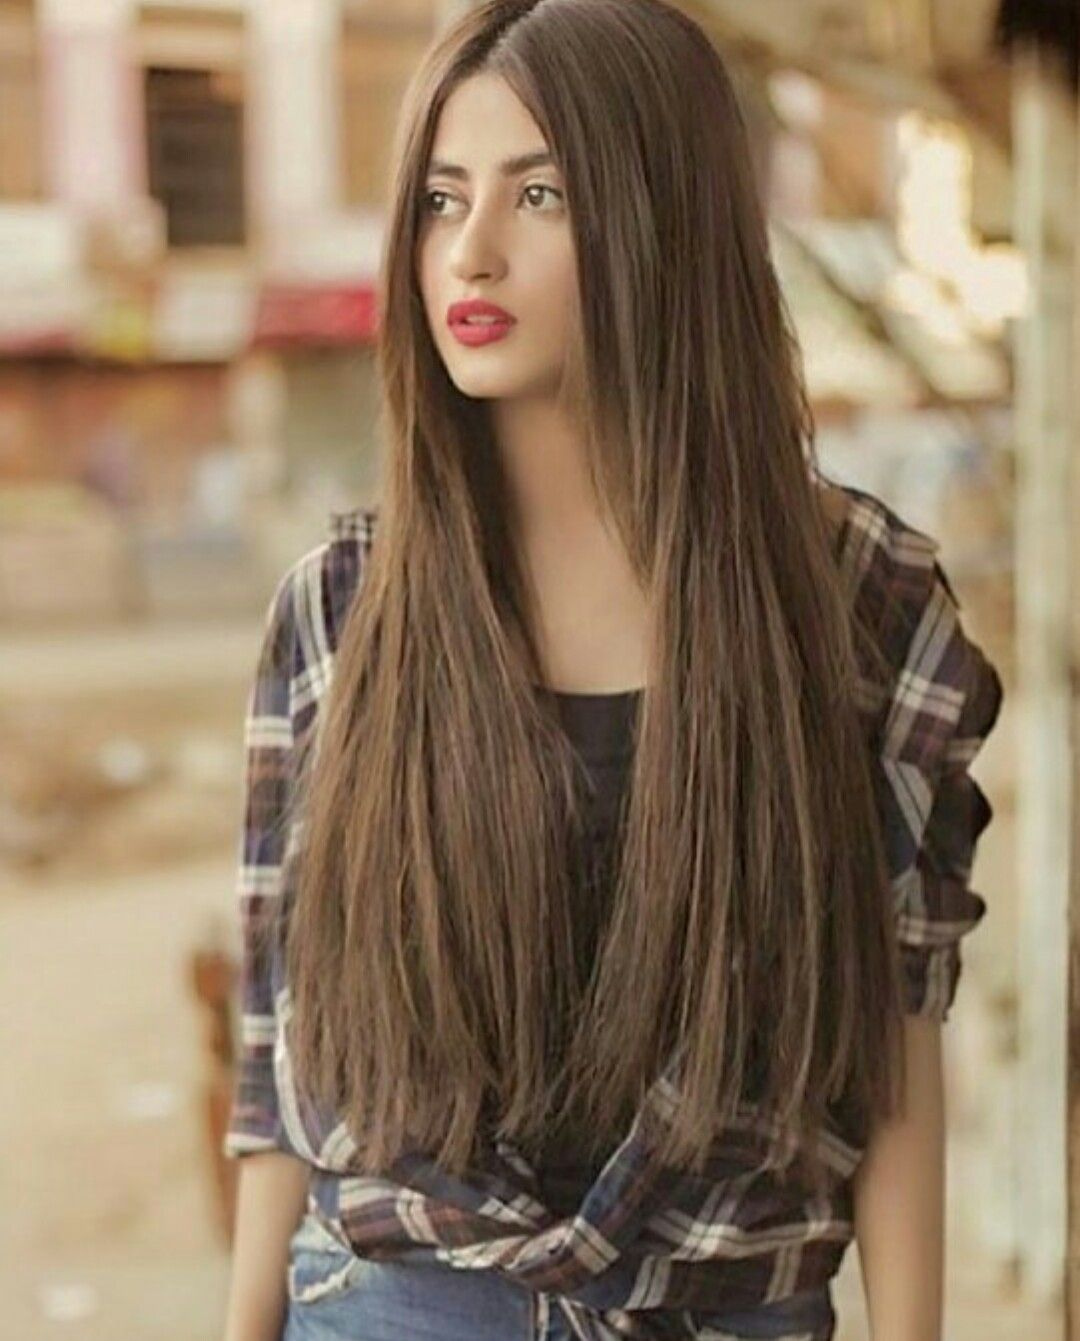 Pakistani Actress Hairstyles: Pin By Mano👸 On Hairstyle